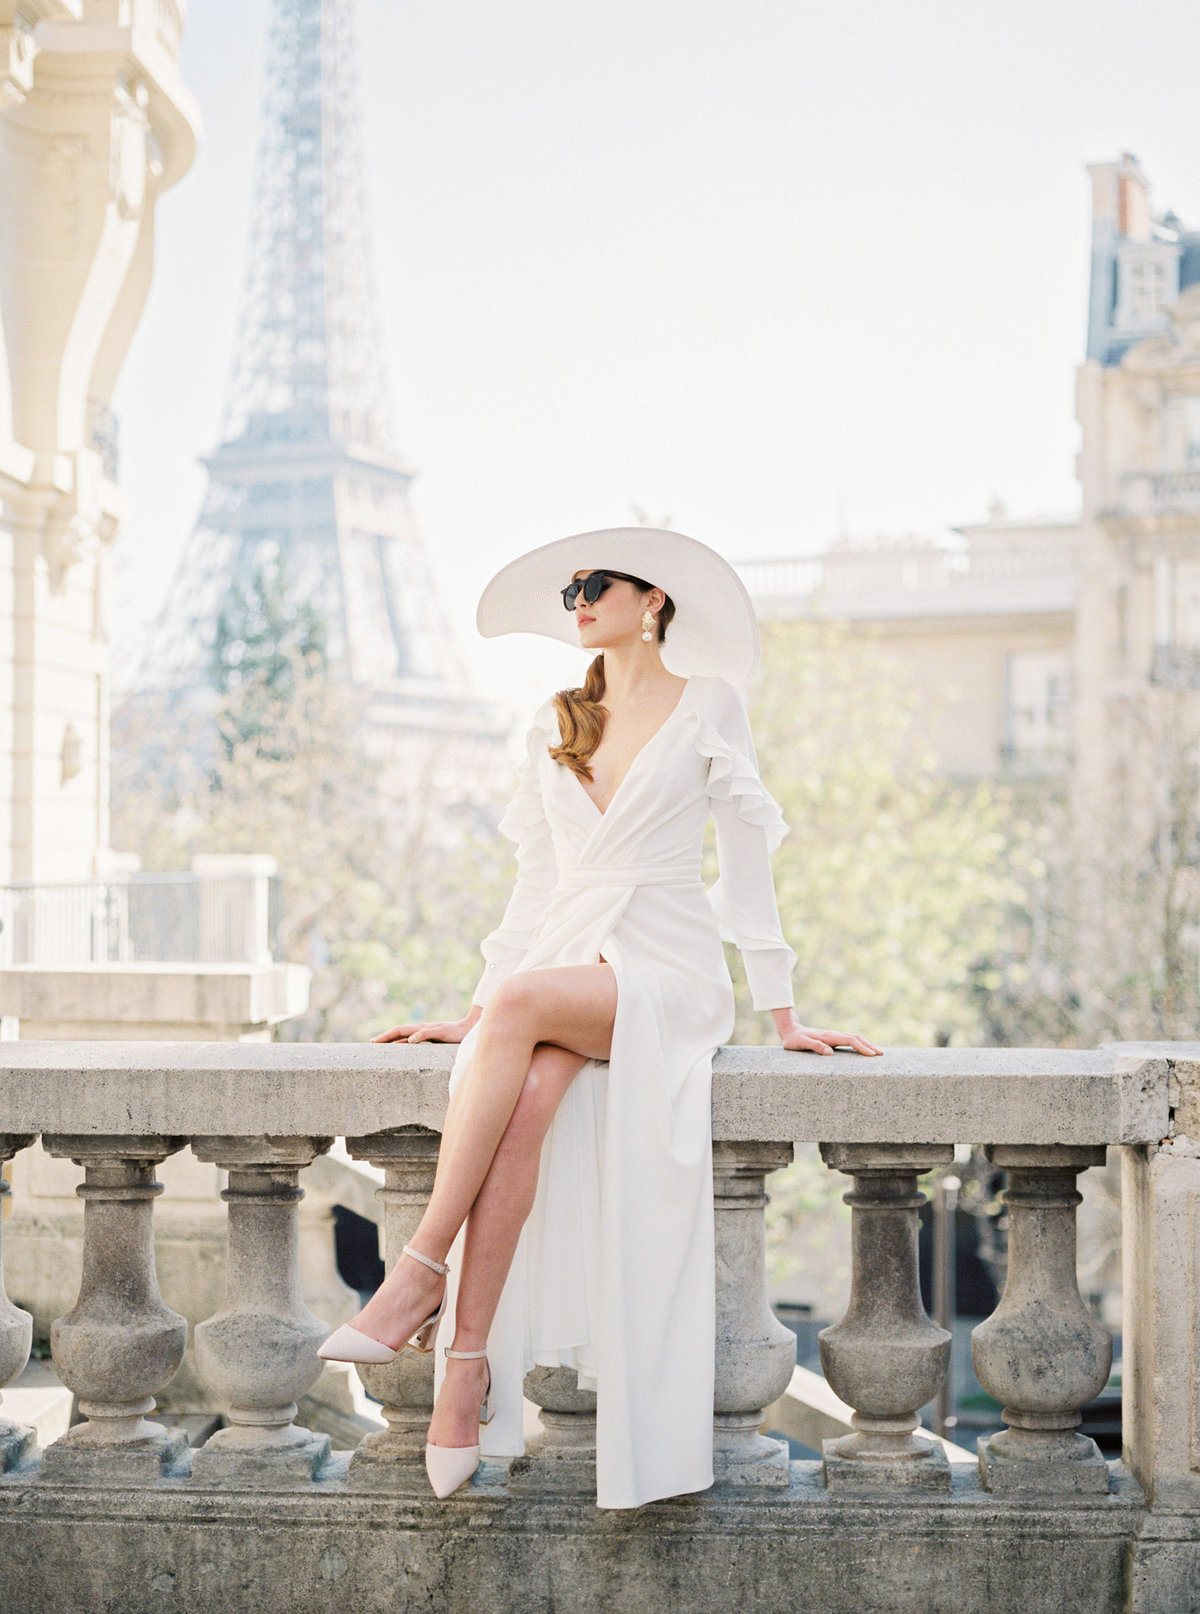 Paris_wedding_photographer_claire_Morris_119